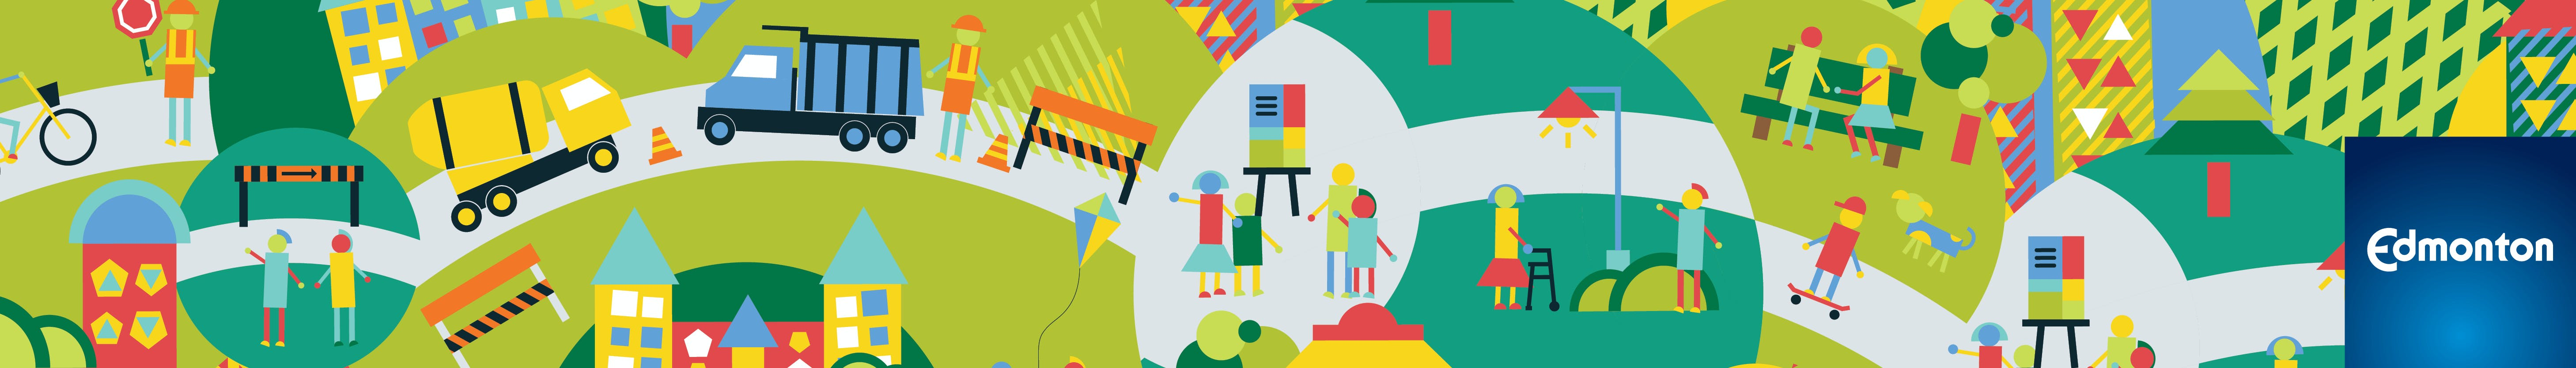 Banner image showing activities happening in a neighbourhood as part of the renewal process